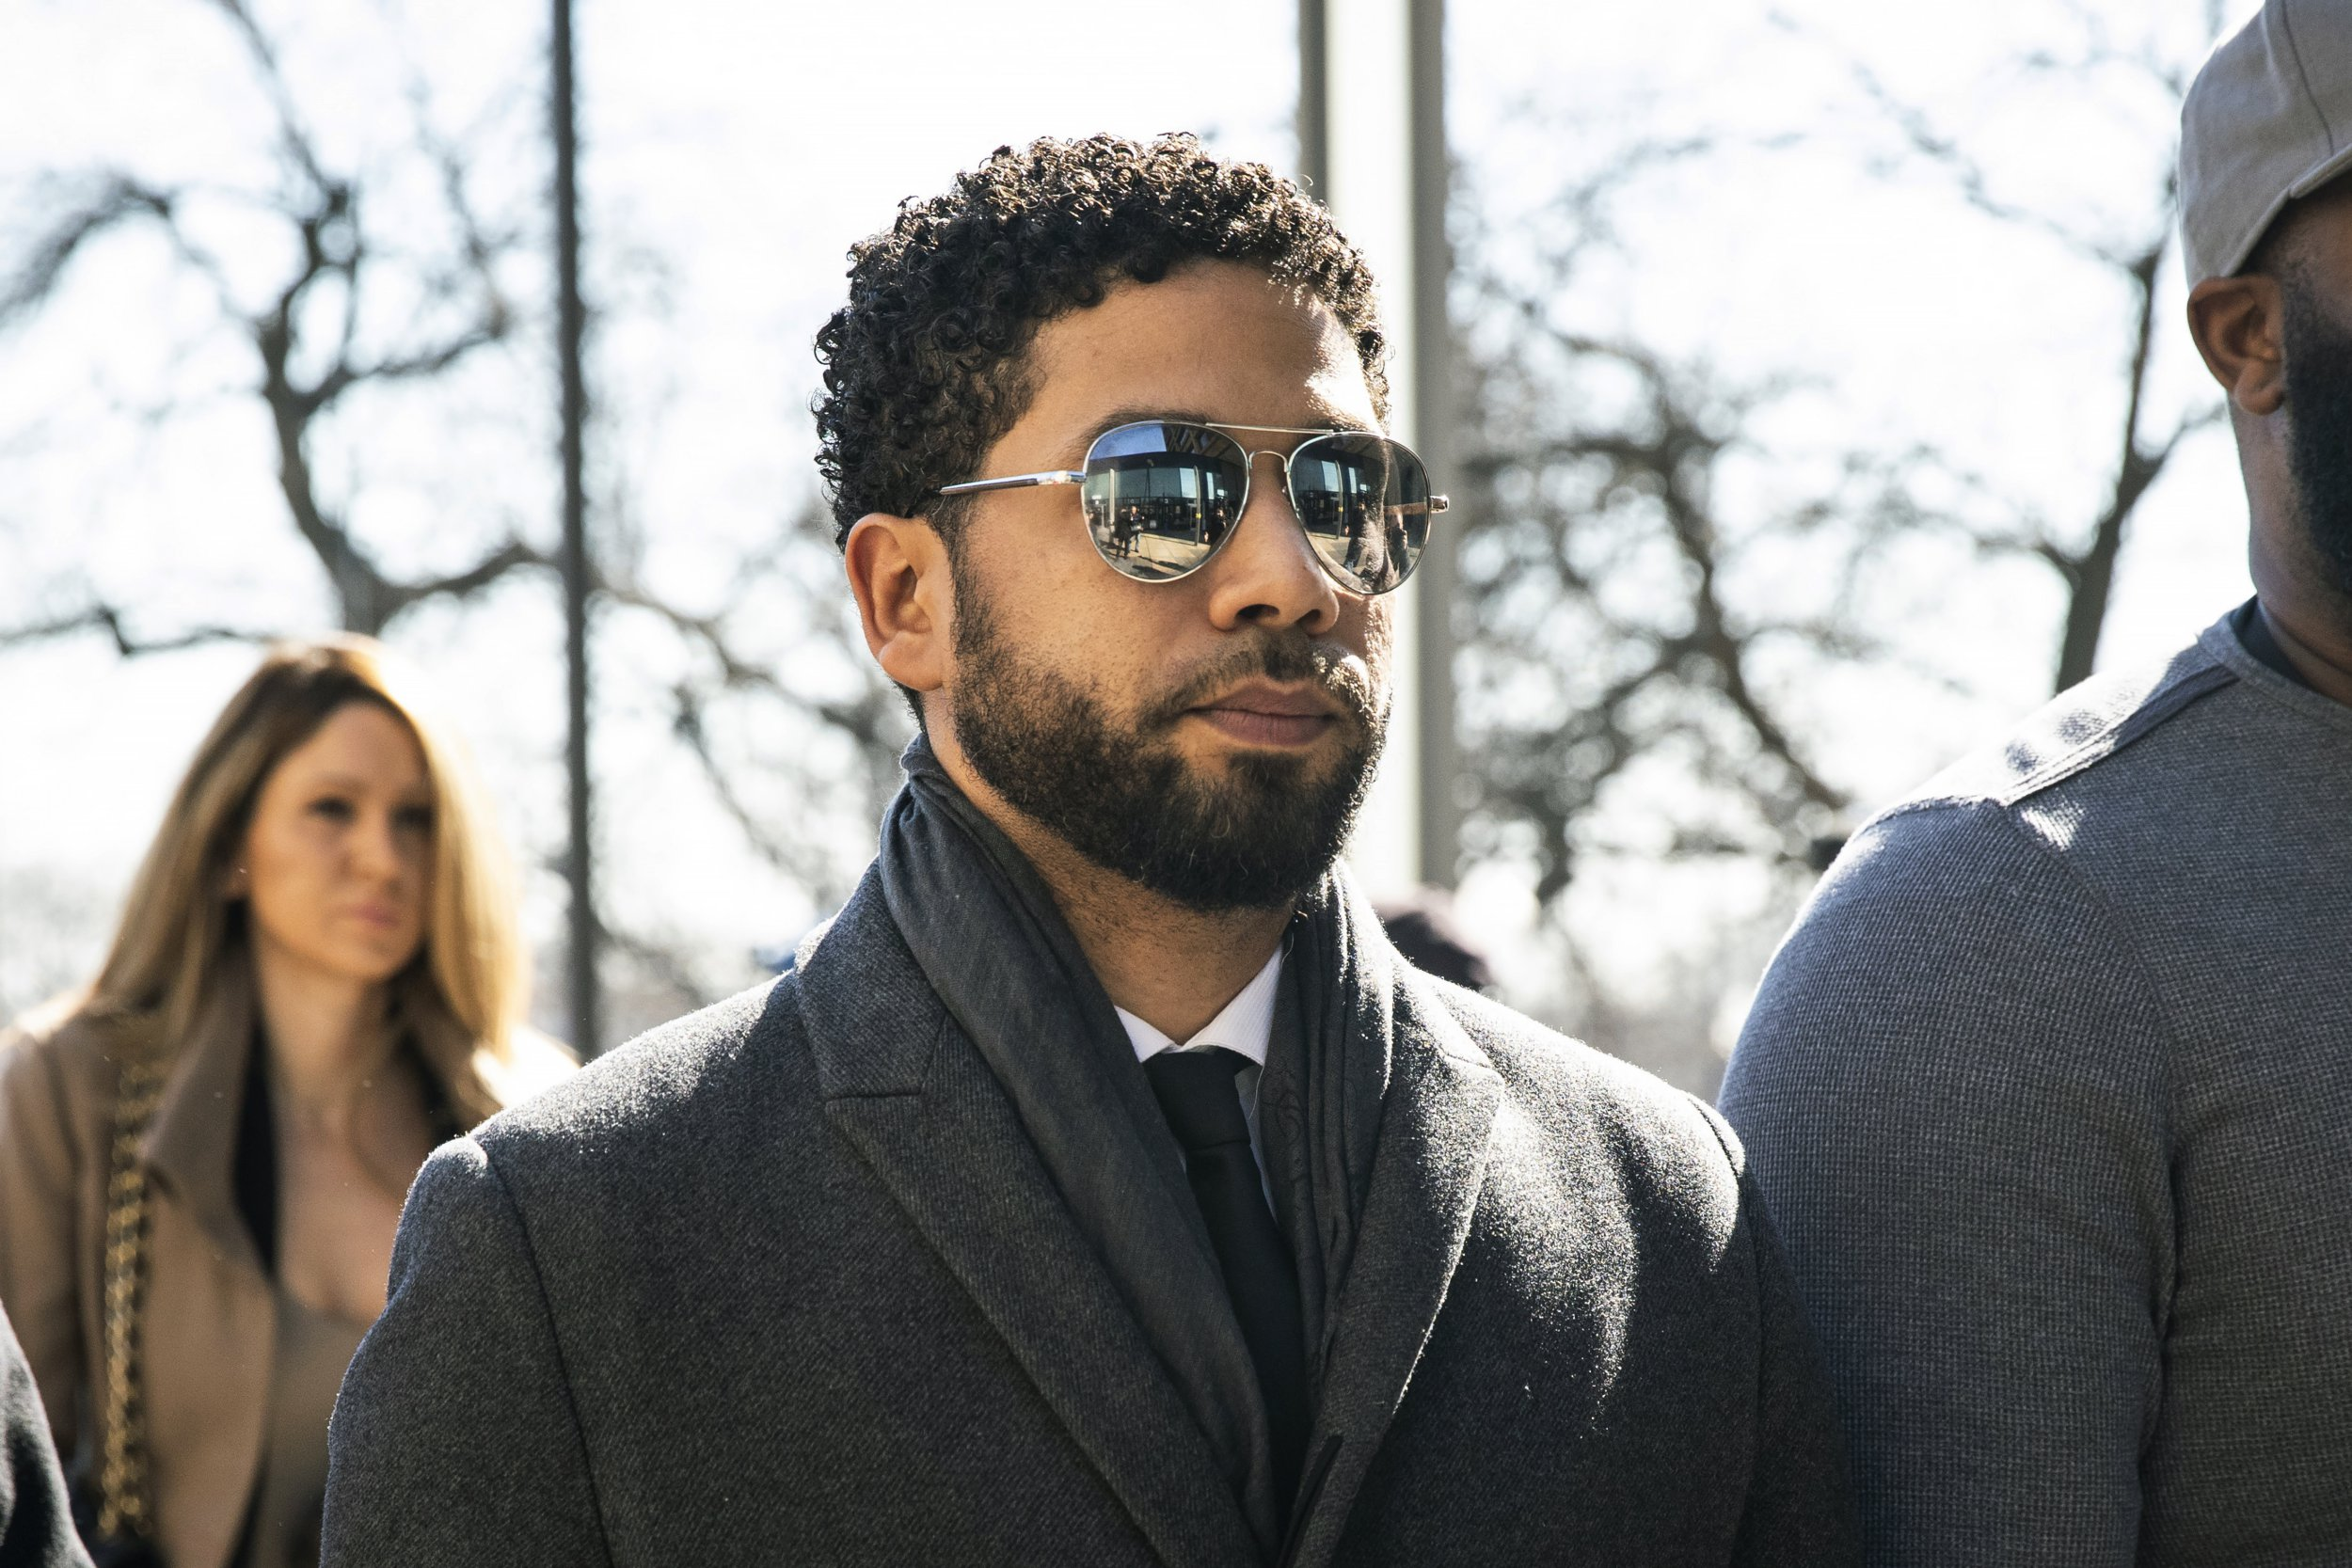 Jussie Smollett has all charges against him dropped in 'false police report' case